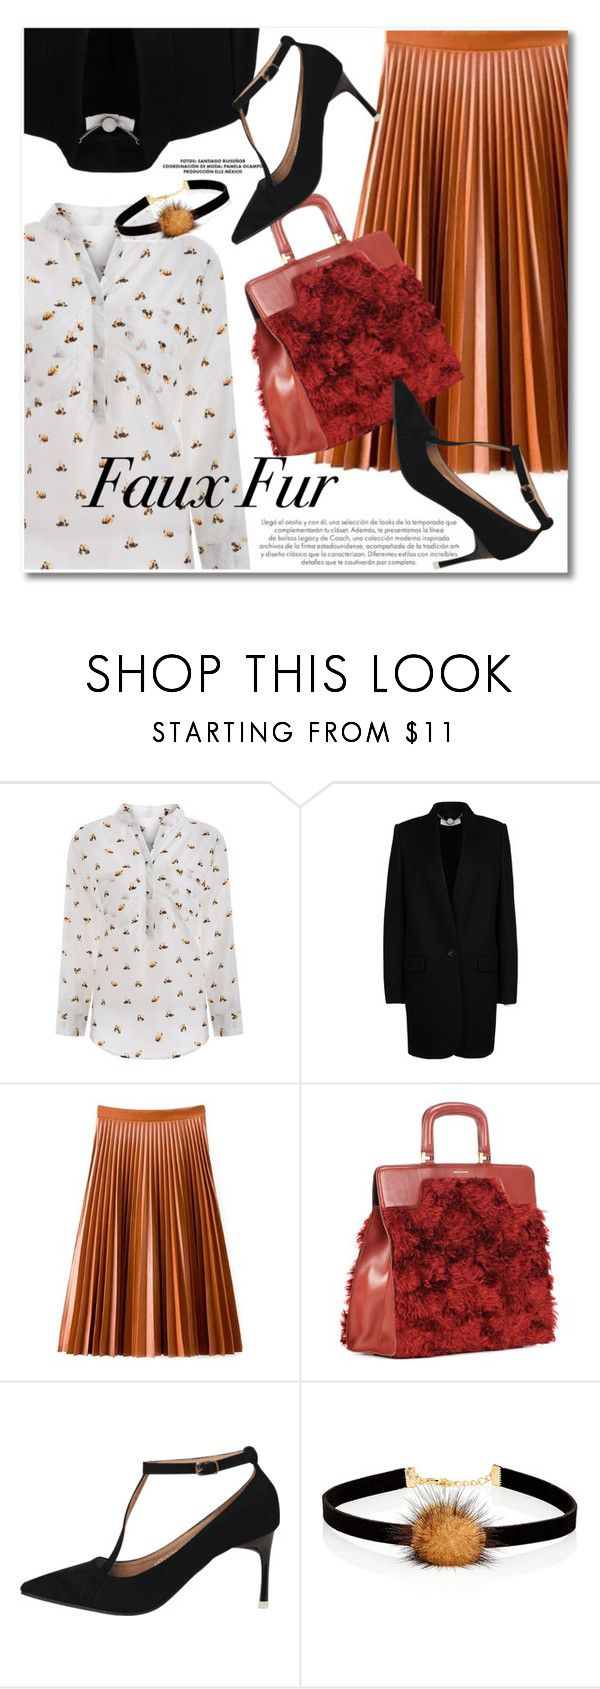 """""""Wow Factor: Faux Fur"""" by svijetlana ❤ liked on Polyvore featuring STELLA McCARTNEY, Dries Van Noten, Jules Smith and fauxfur"""